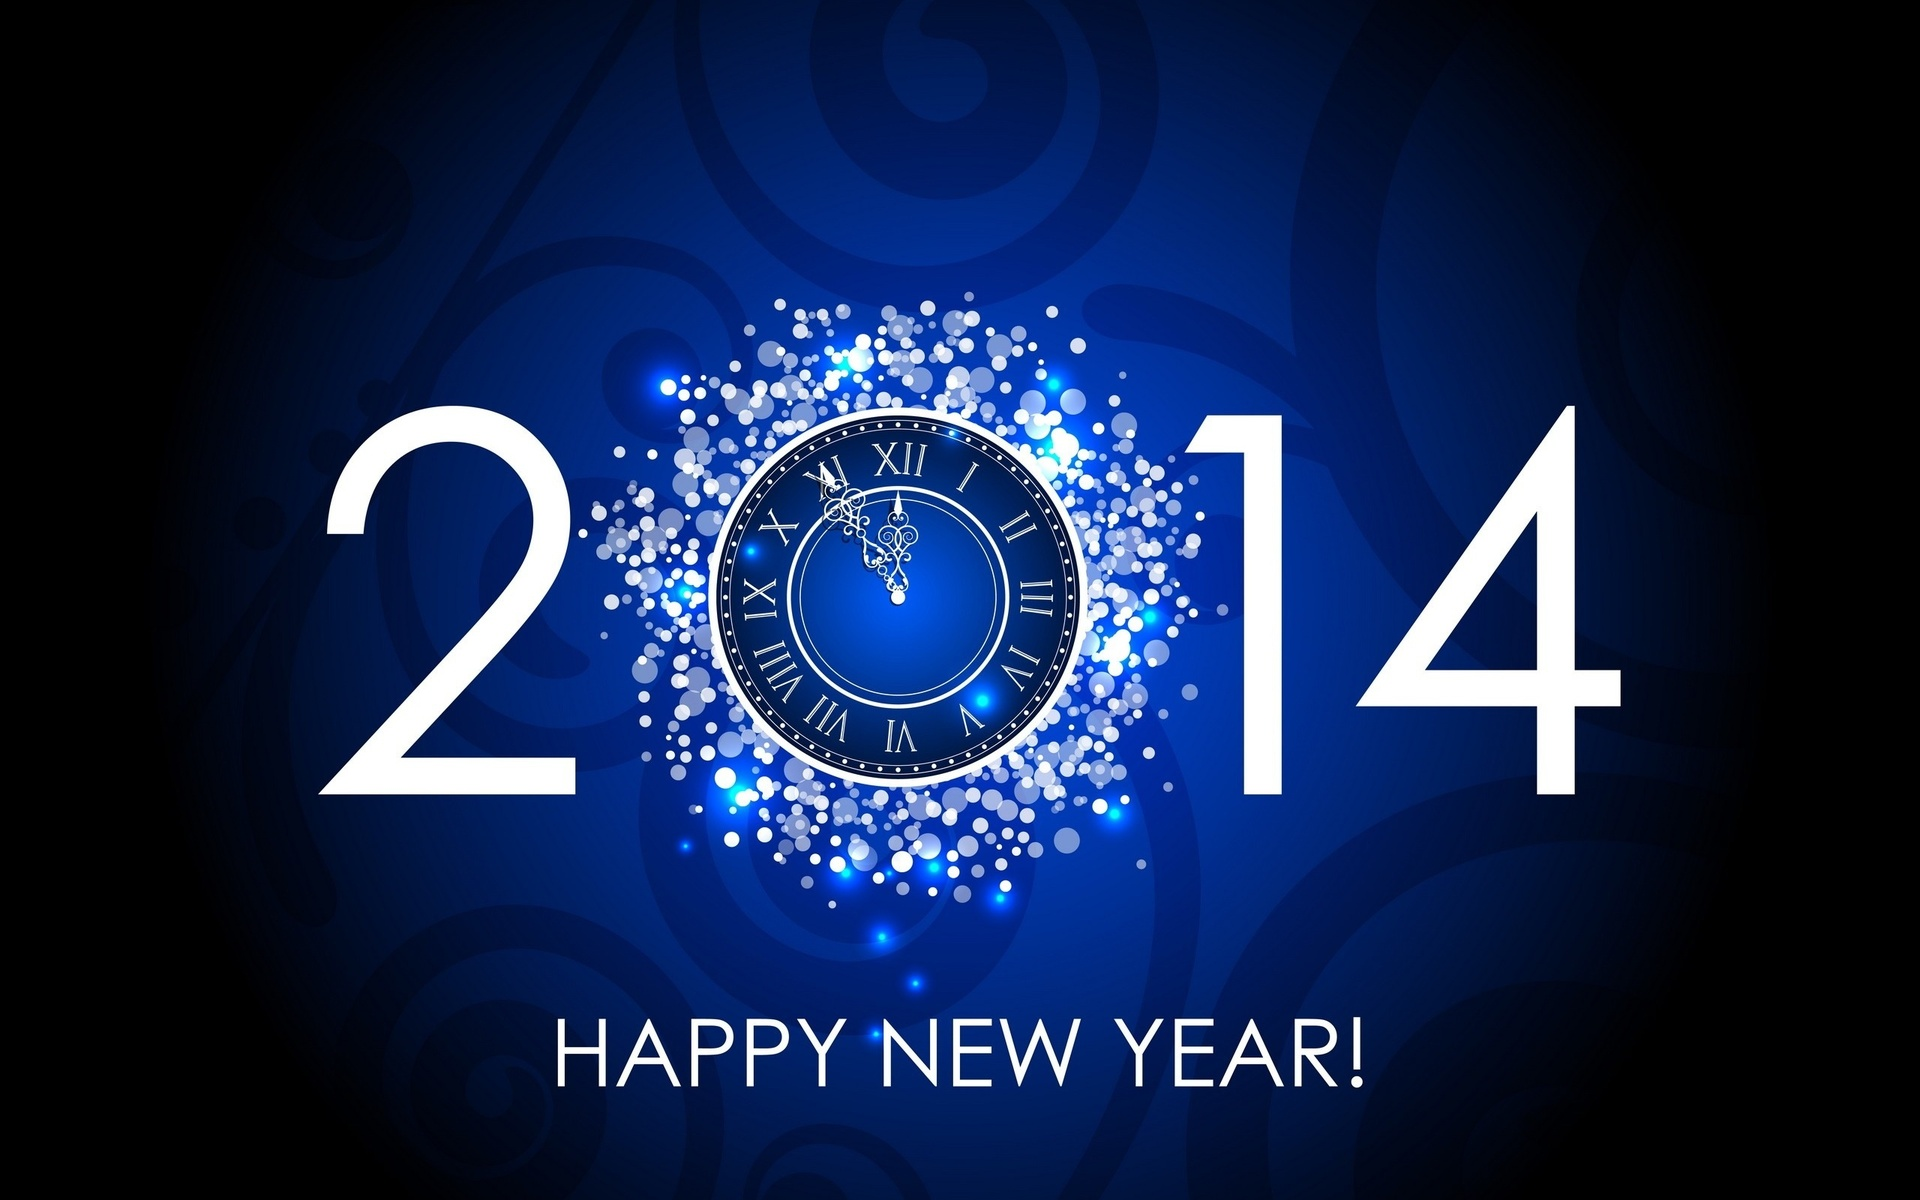 happy-new-year-2014-holiday-hd-wallpaper-1920x1200-6341.jpg